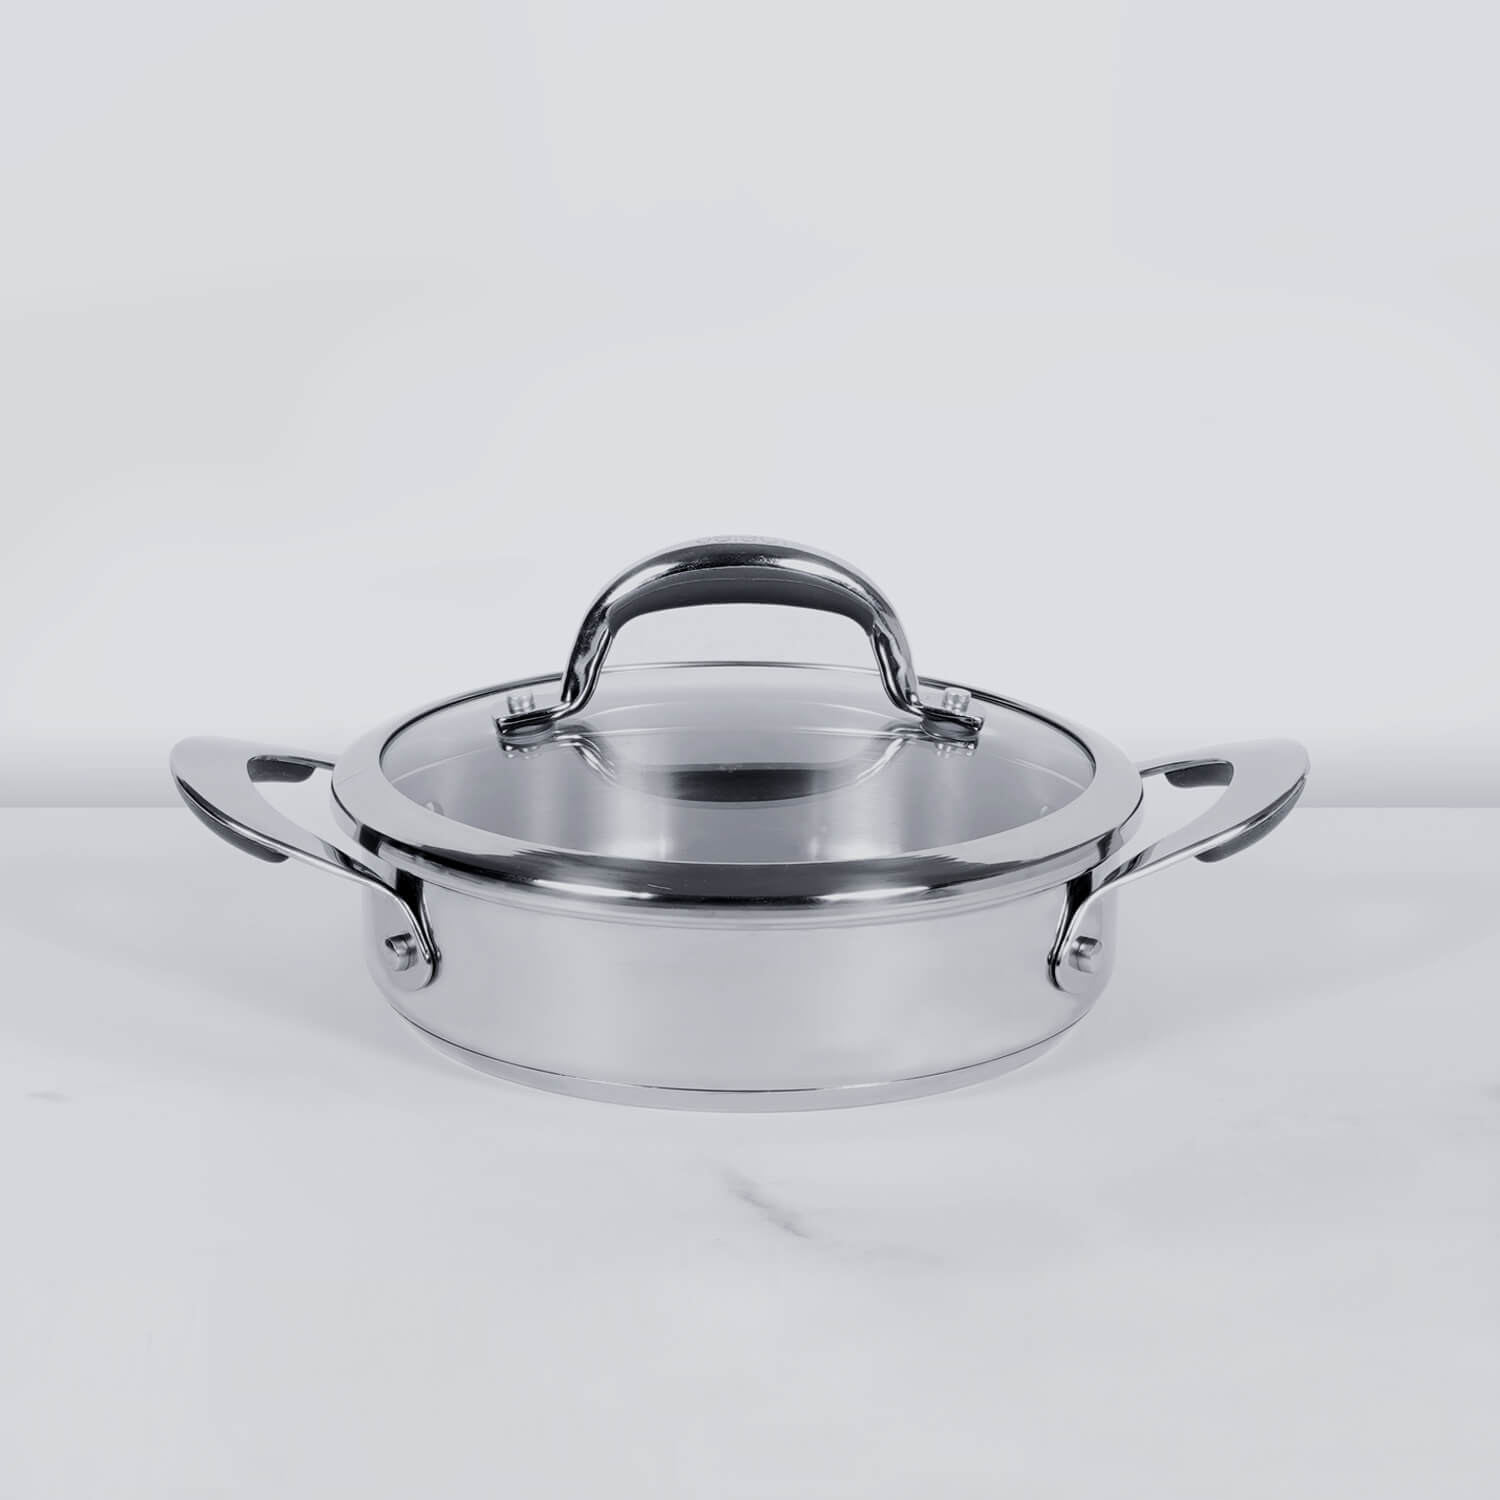 Meyer Select Stainless Steel Sauteuse 24cm (Induction & Gas Compatible) - Pots and Pans